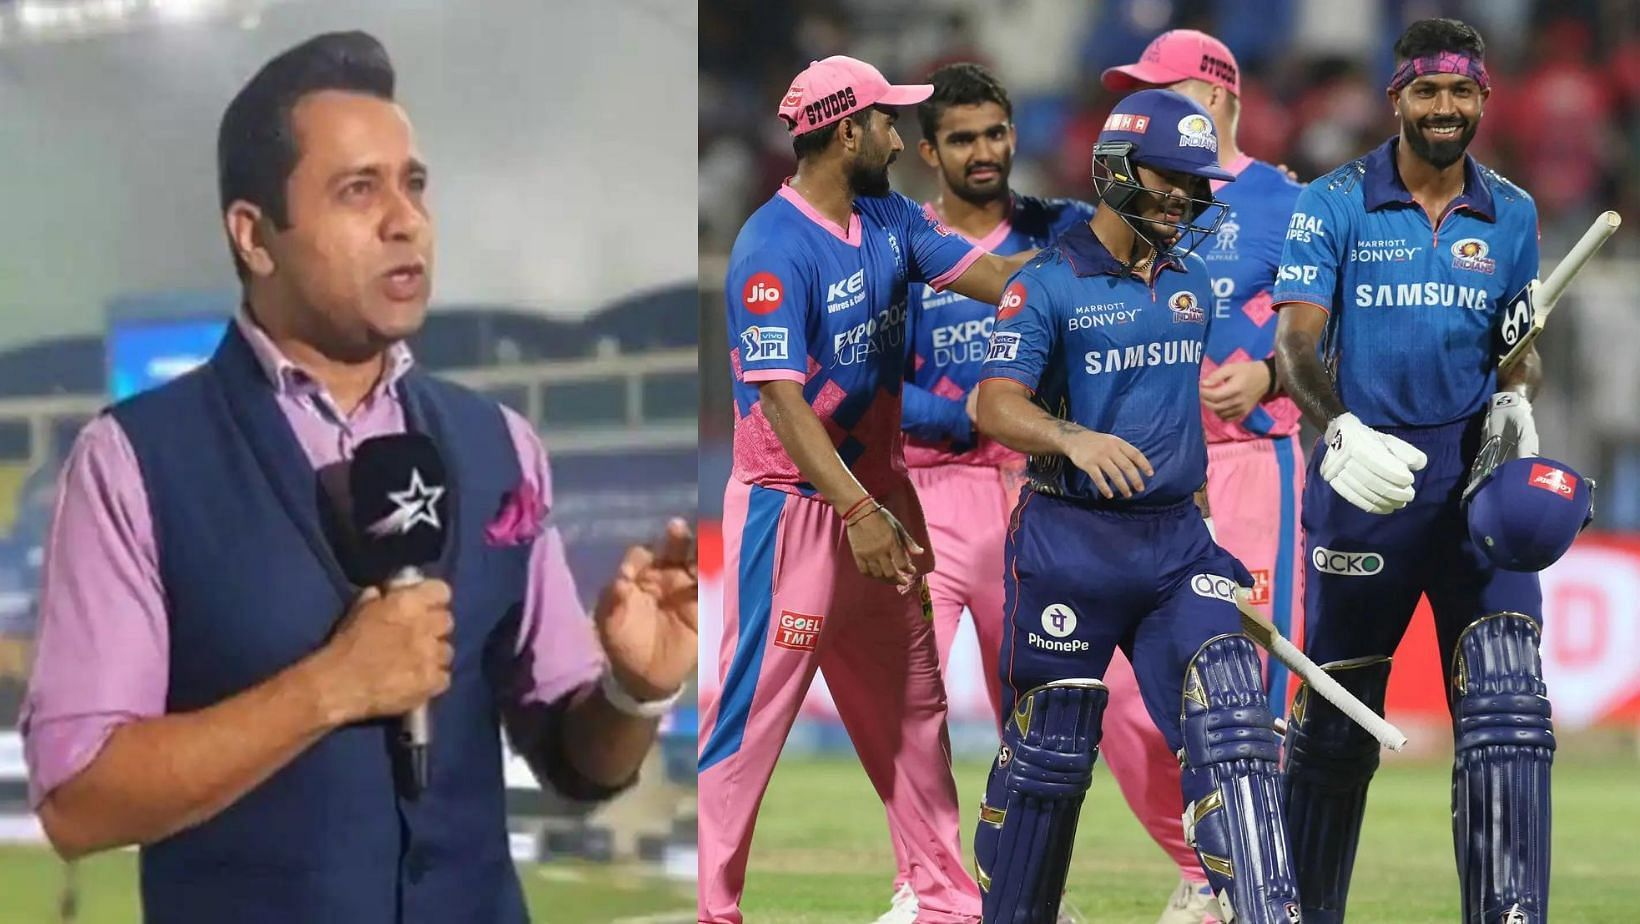 Aakash Chopra (L) and Mumbai Indians' players after their massive win over Rajasthan Royals.